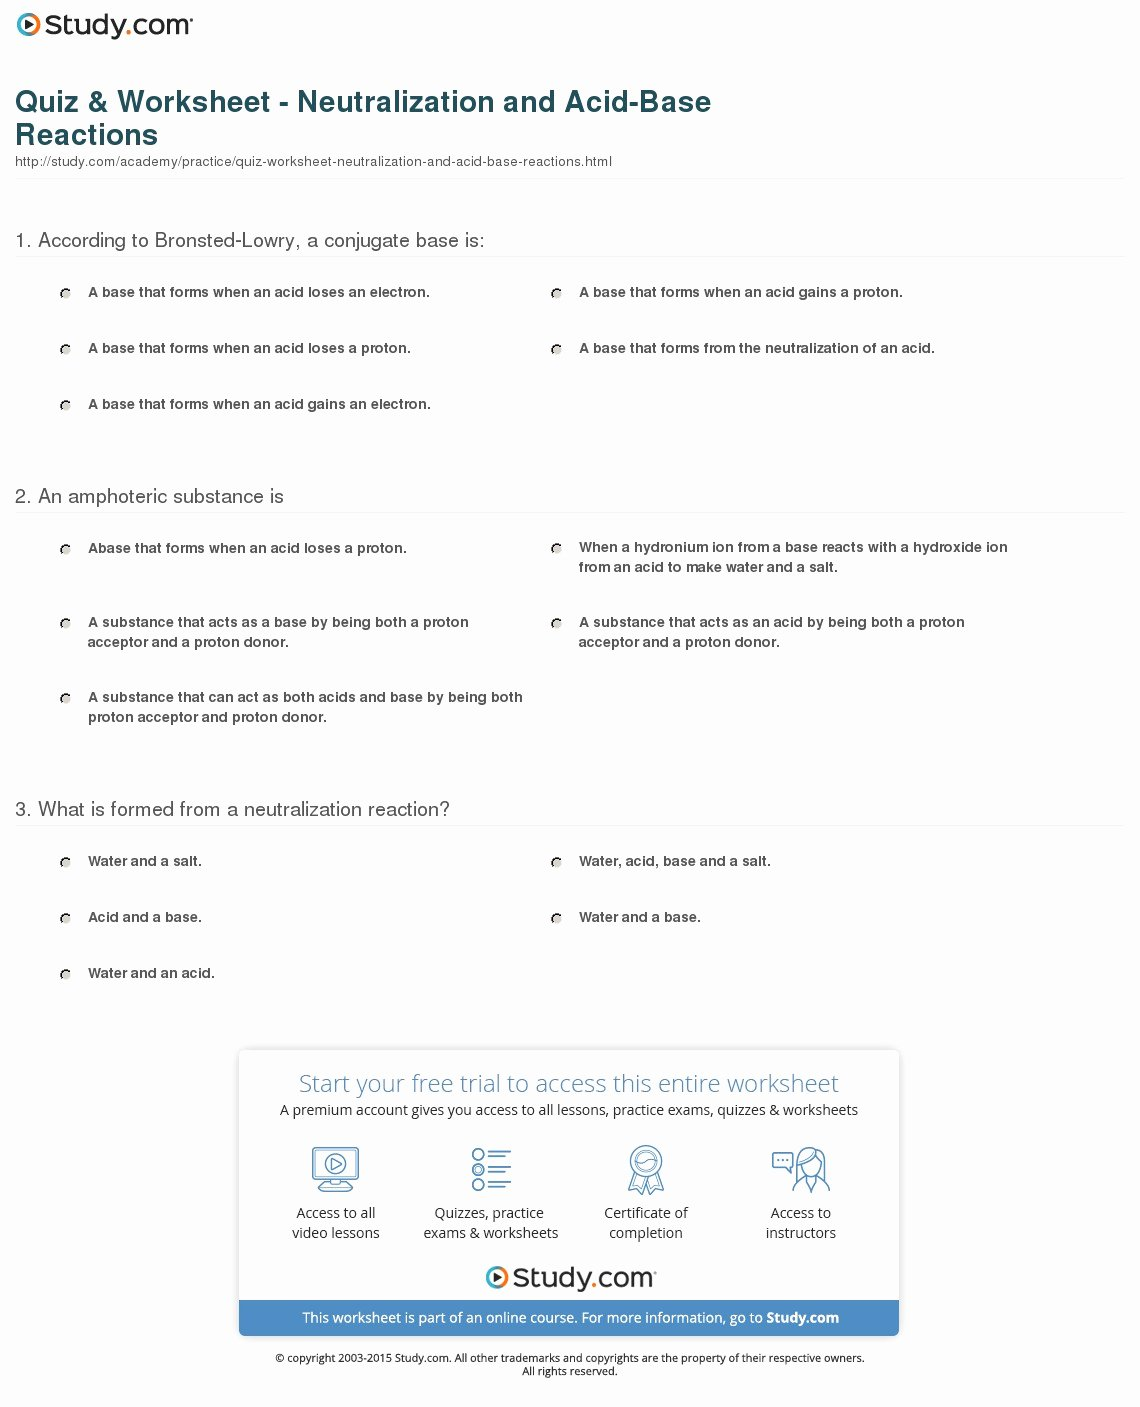 Acid and Base Worksheet Answers New Quiz & Worksheet Neutralization and Acid Base Reactions